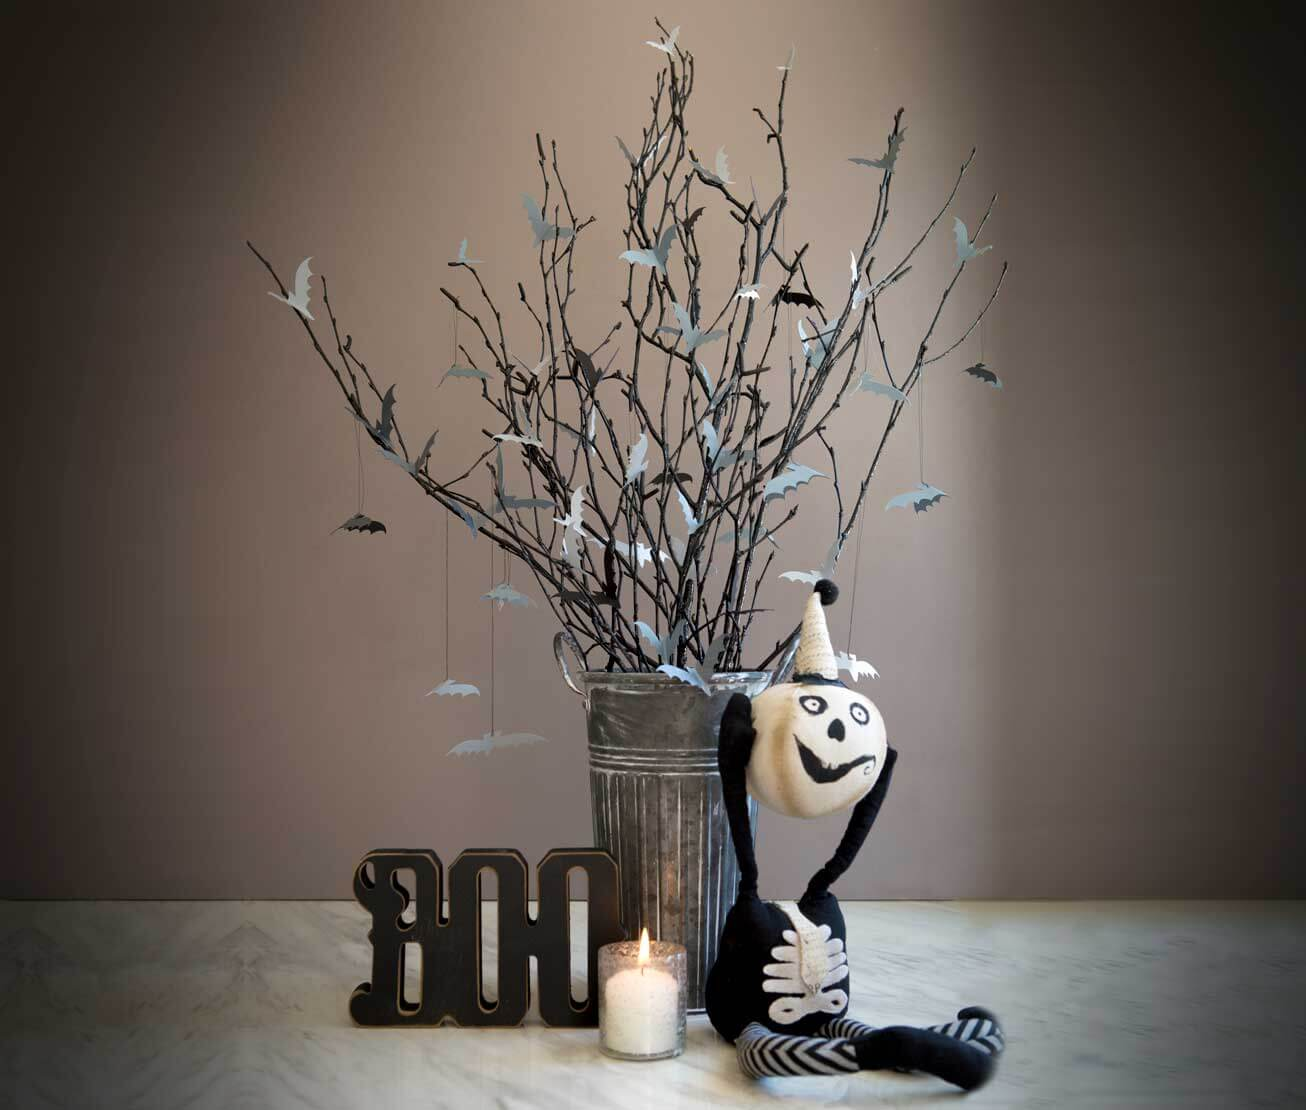 Haunted stick decor is a great centerpiece